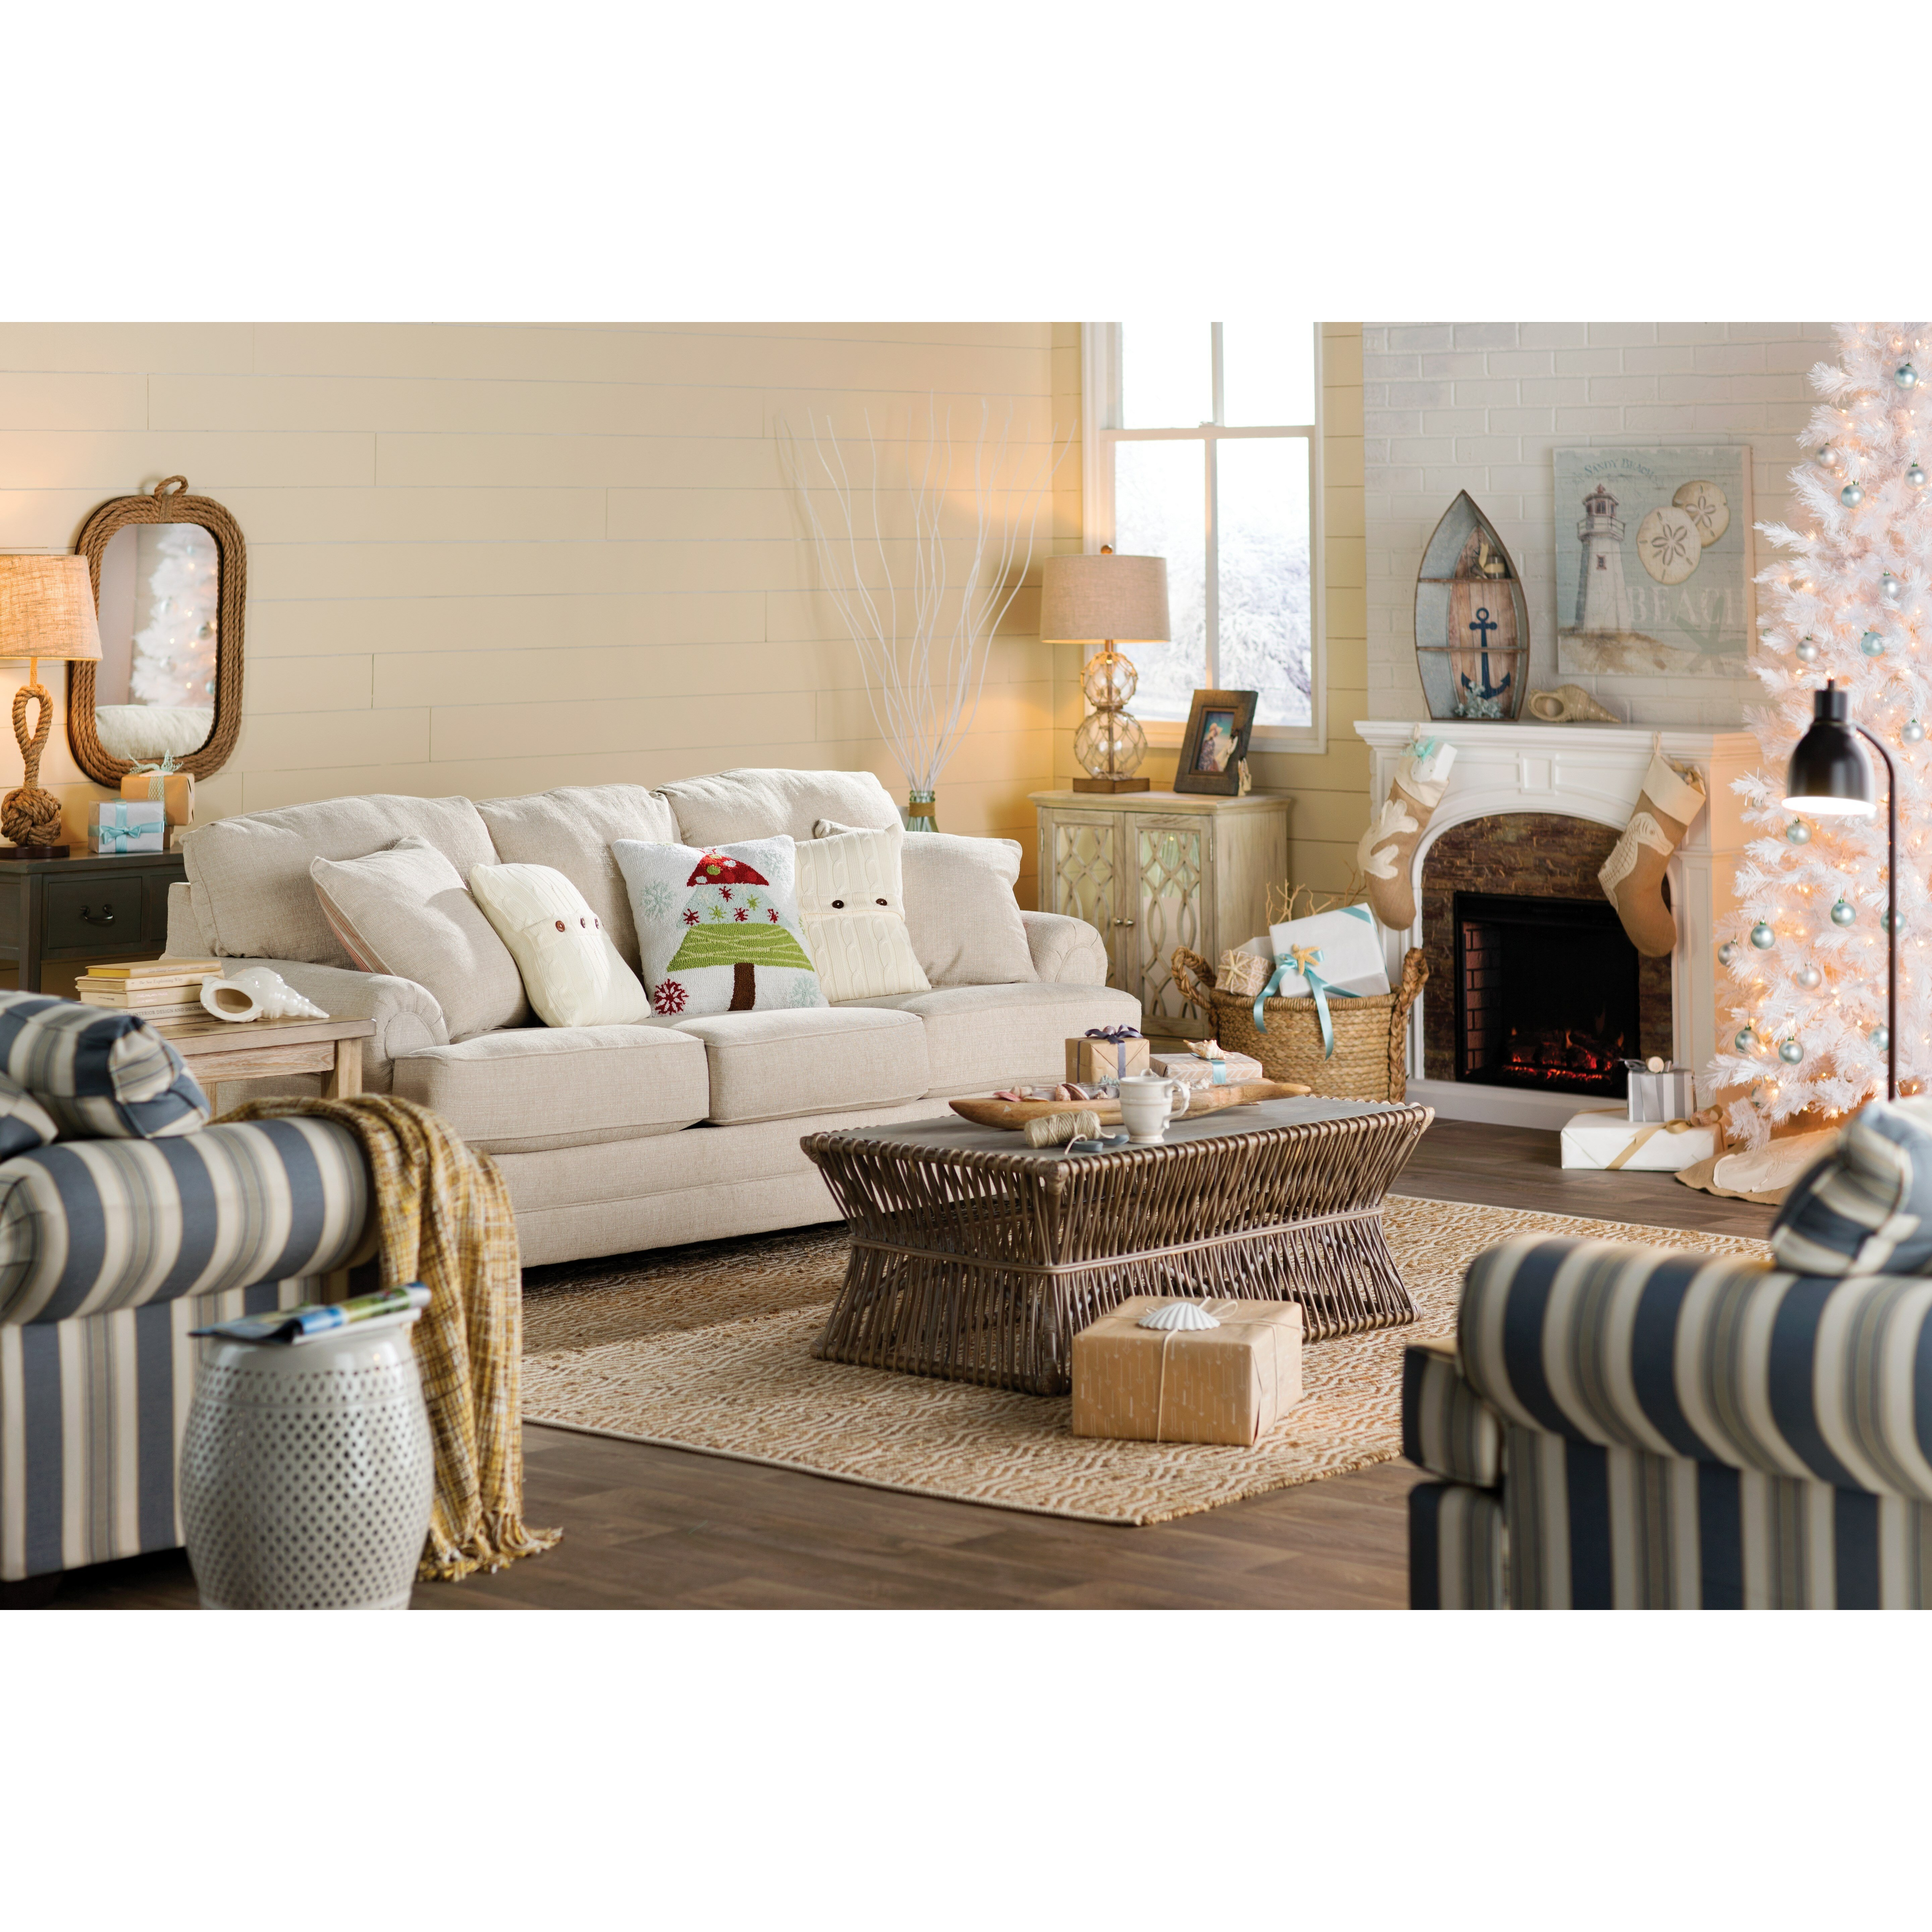 Living Room Area Rug Placement Area Rug Tips Hgtv Living Room Rug Ablimous